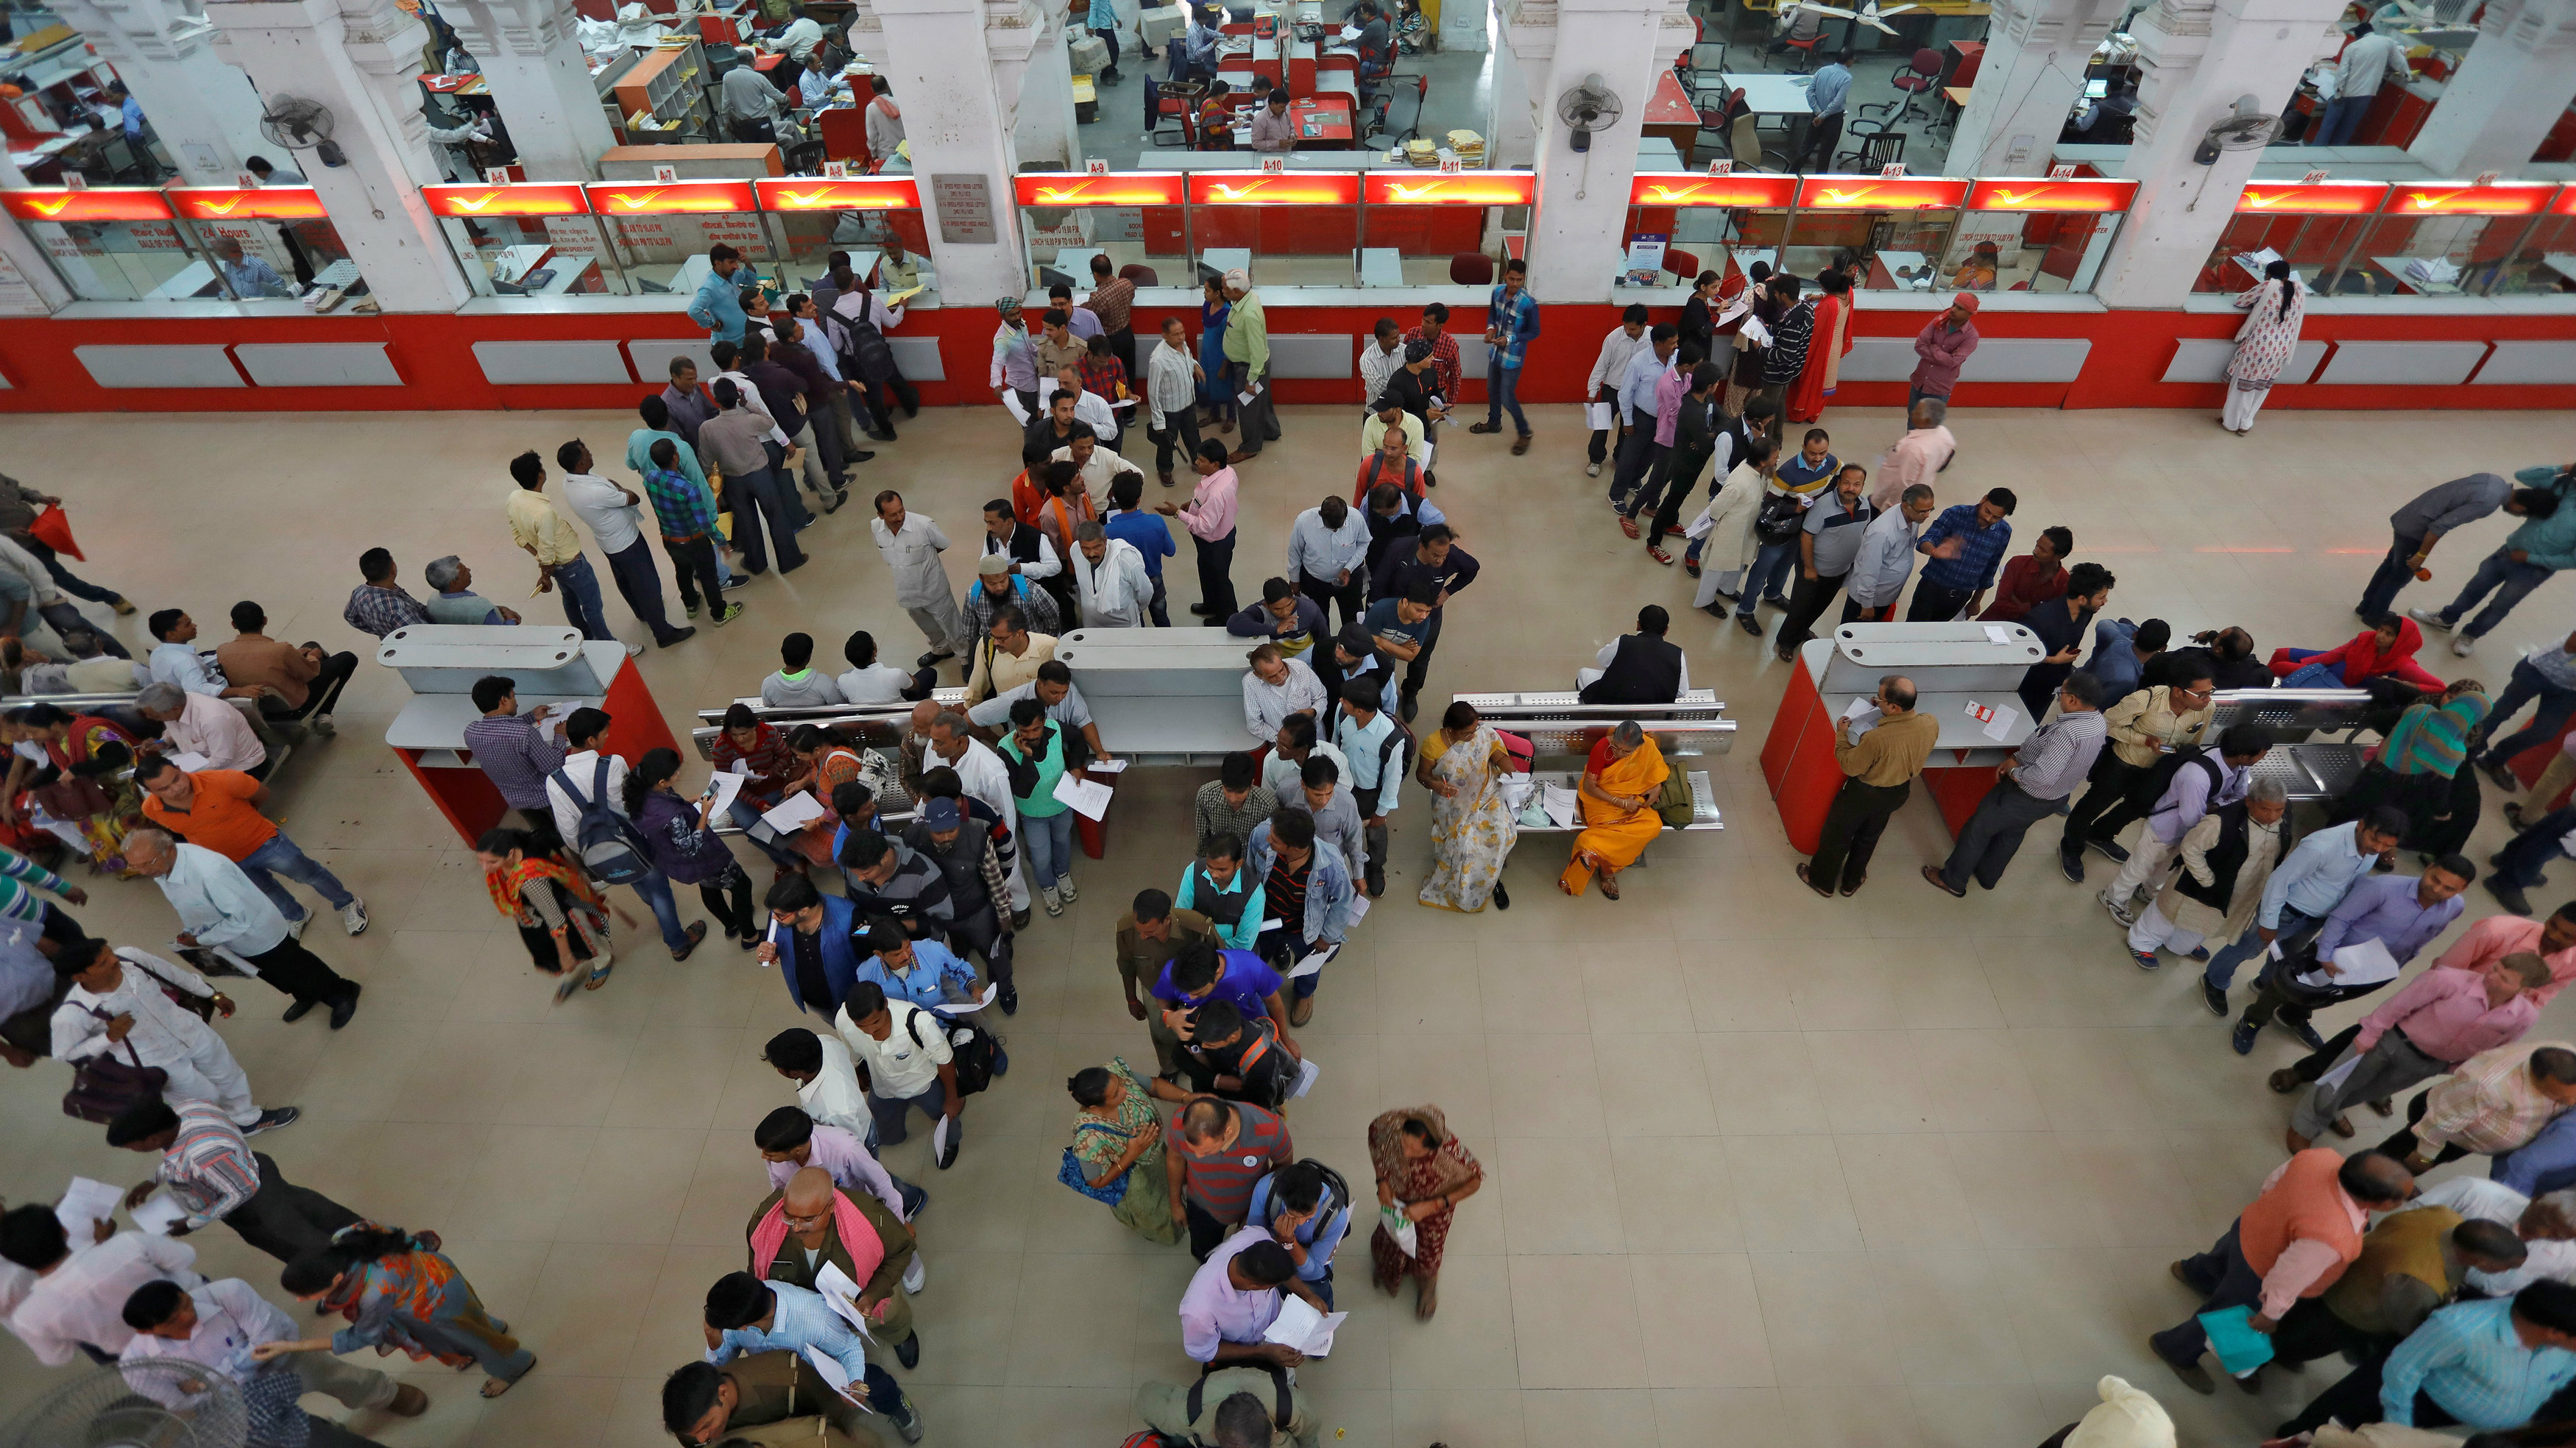 People wait in lines to deposit and withdraw money inside a post office in Lucknow, India, November 10, 2016.